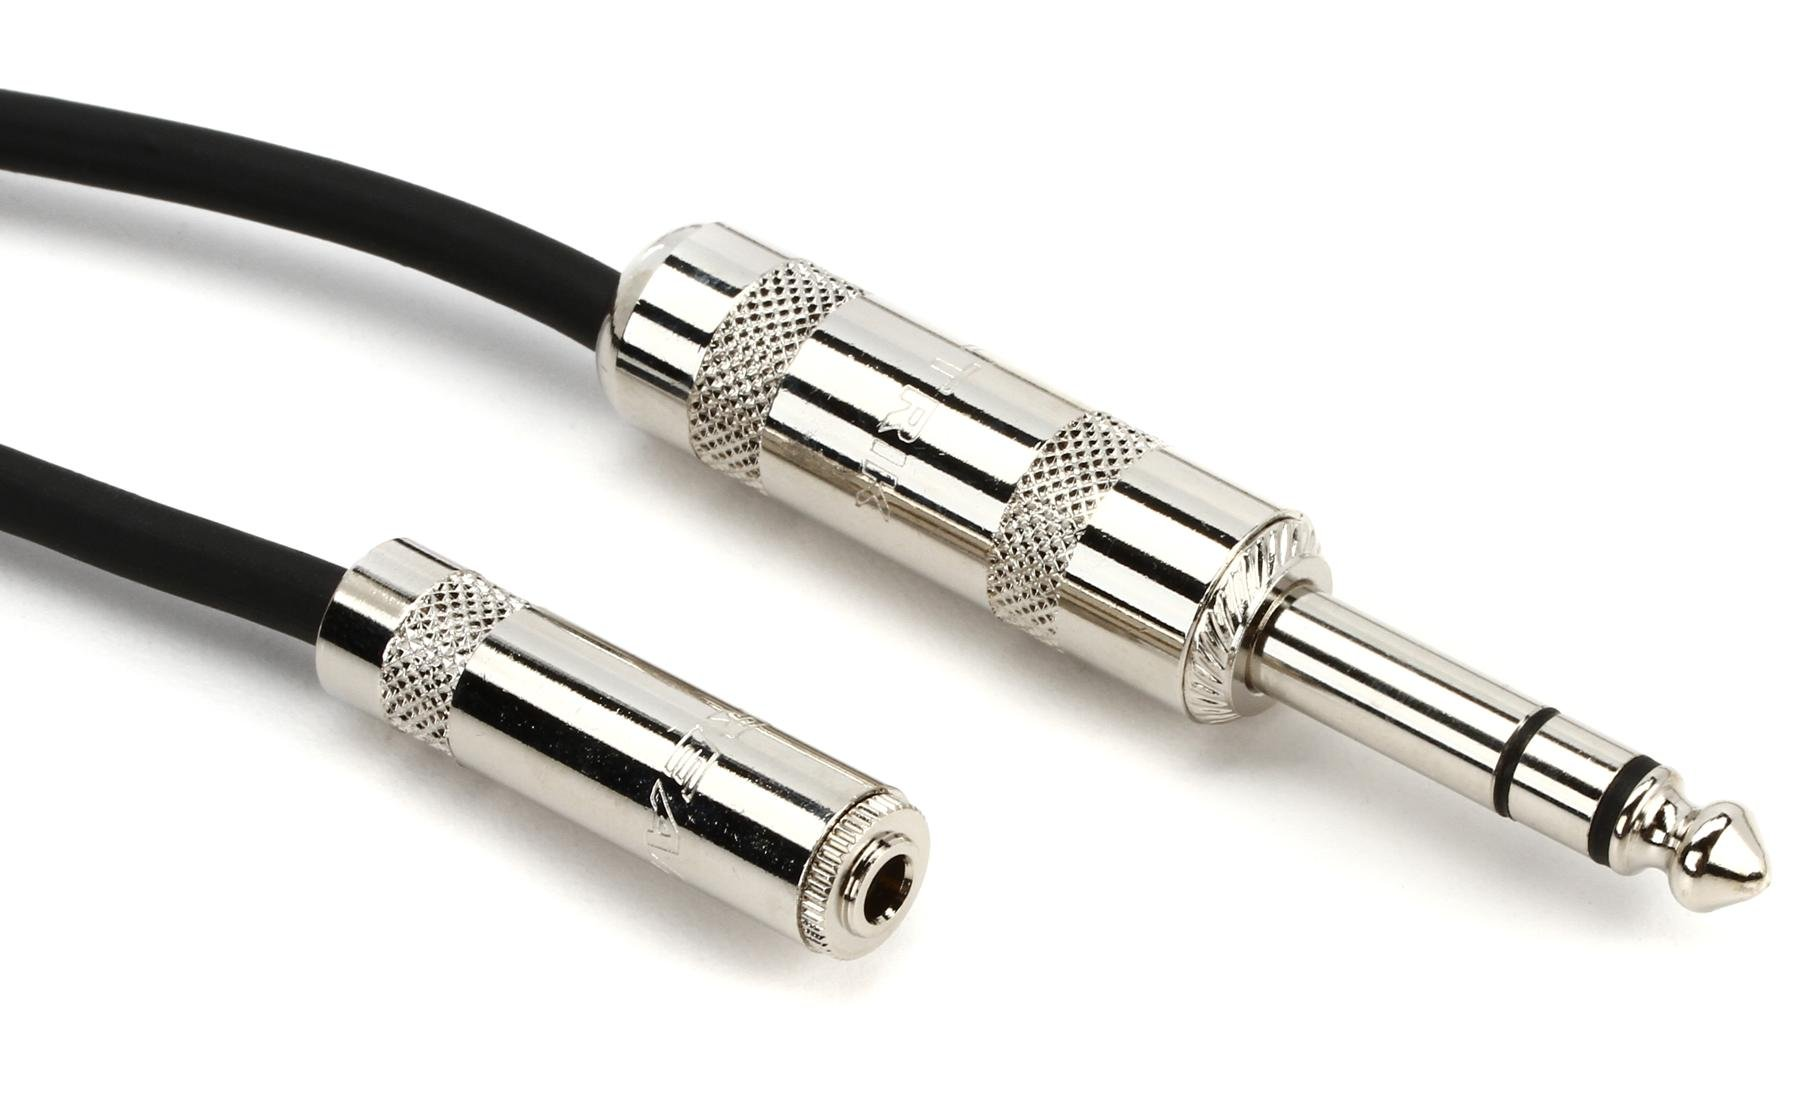 1.27 Mm 30.5 M Rohs Compliant: Yes 20 Flat 100 Ft NFCG-2820 Pro Power Ribbon Cable 0.072 Mm 28 Awg